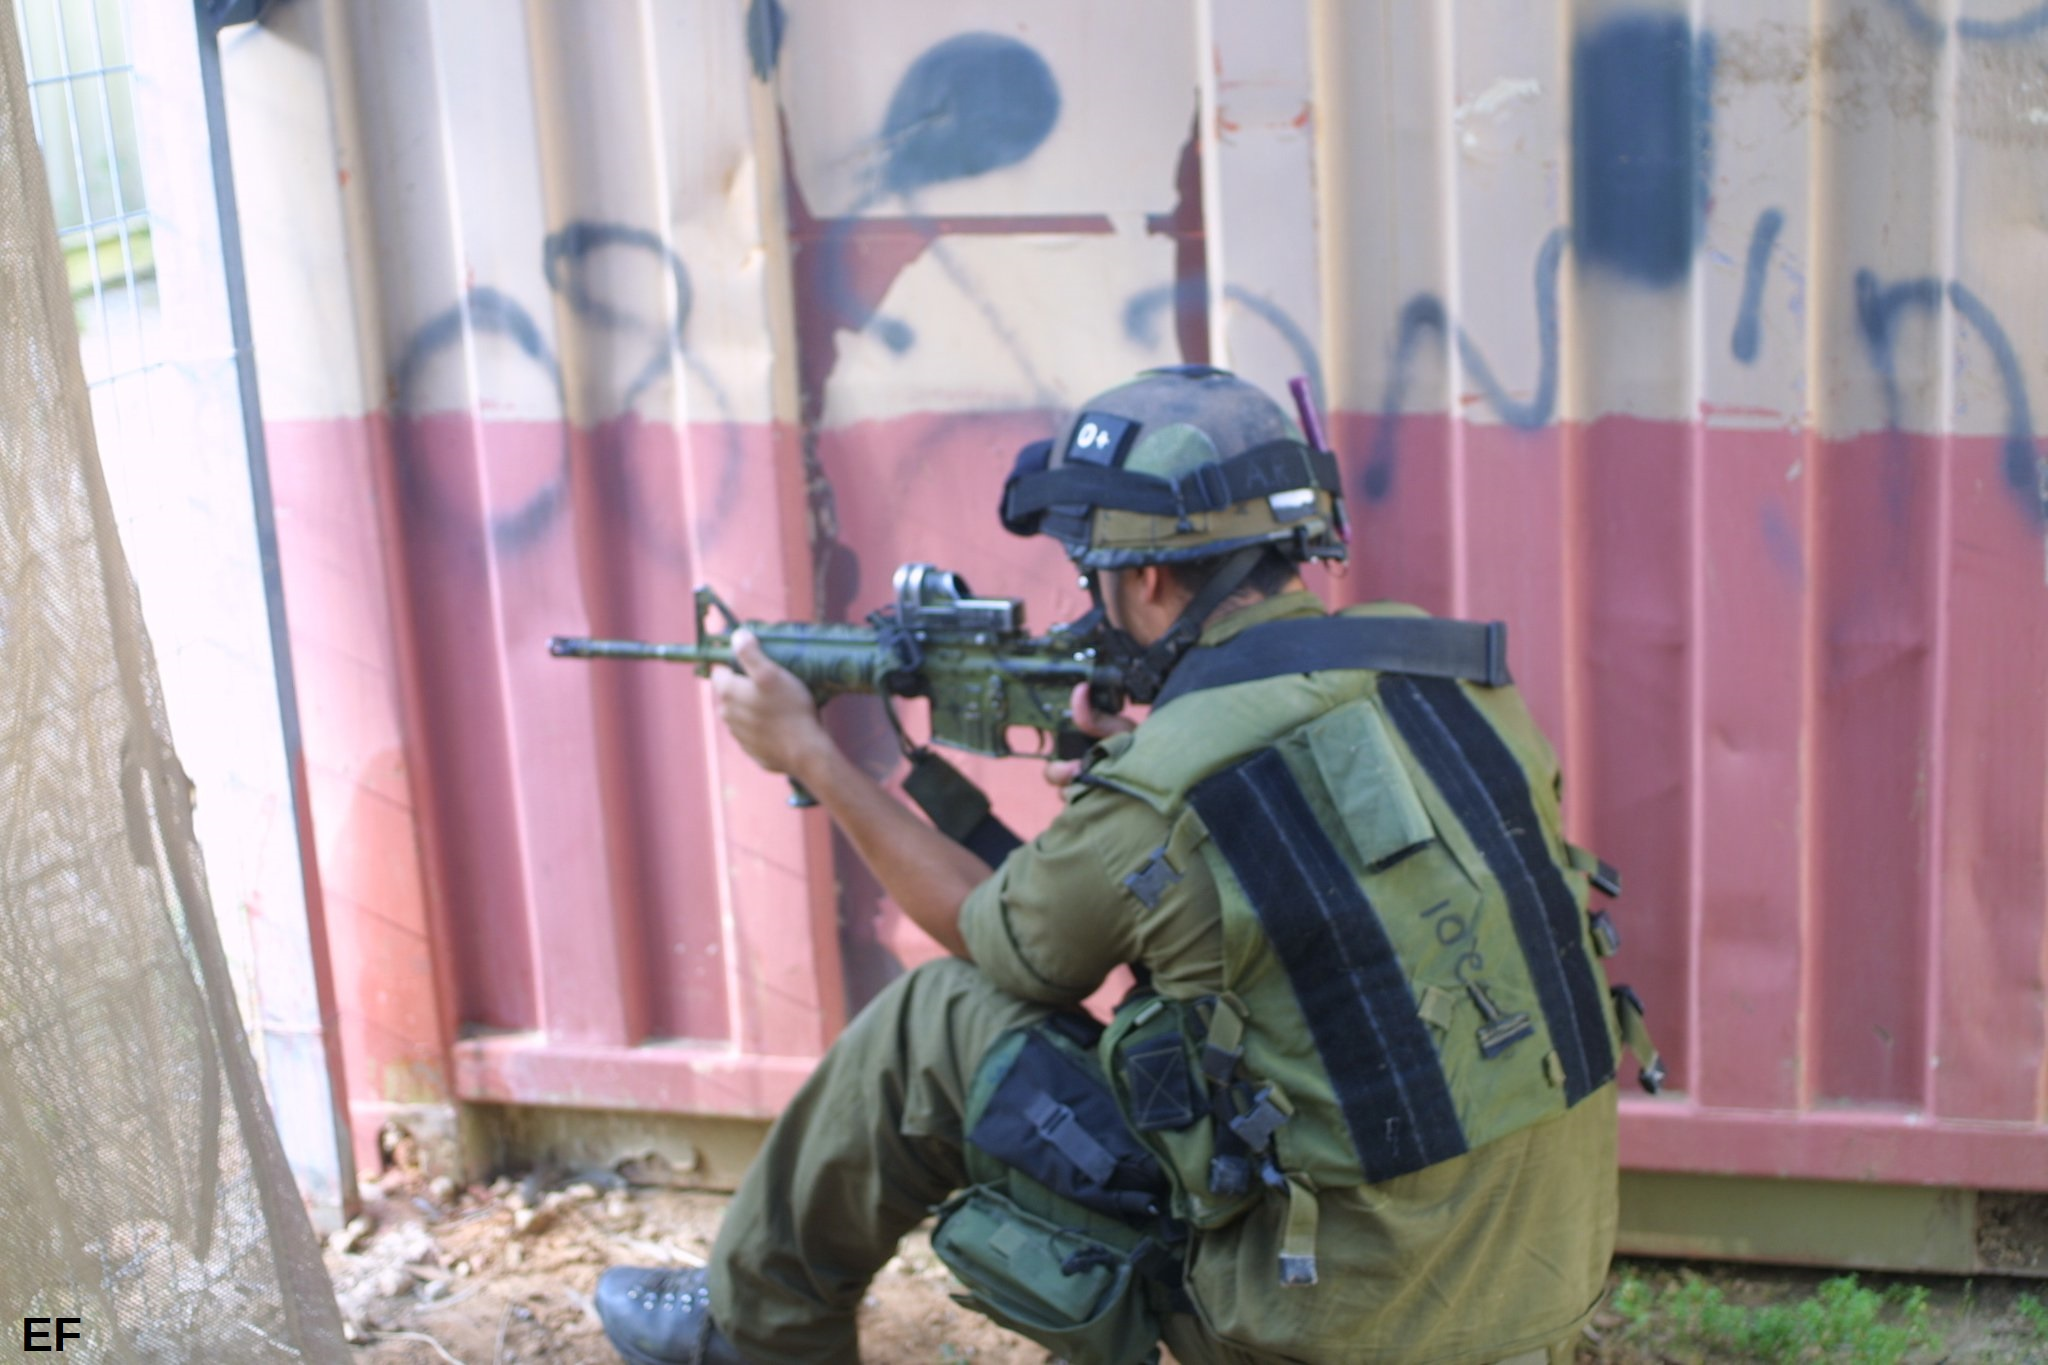 'You were all dead long ago': My first close-quarters combat training | SOFREP